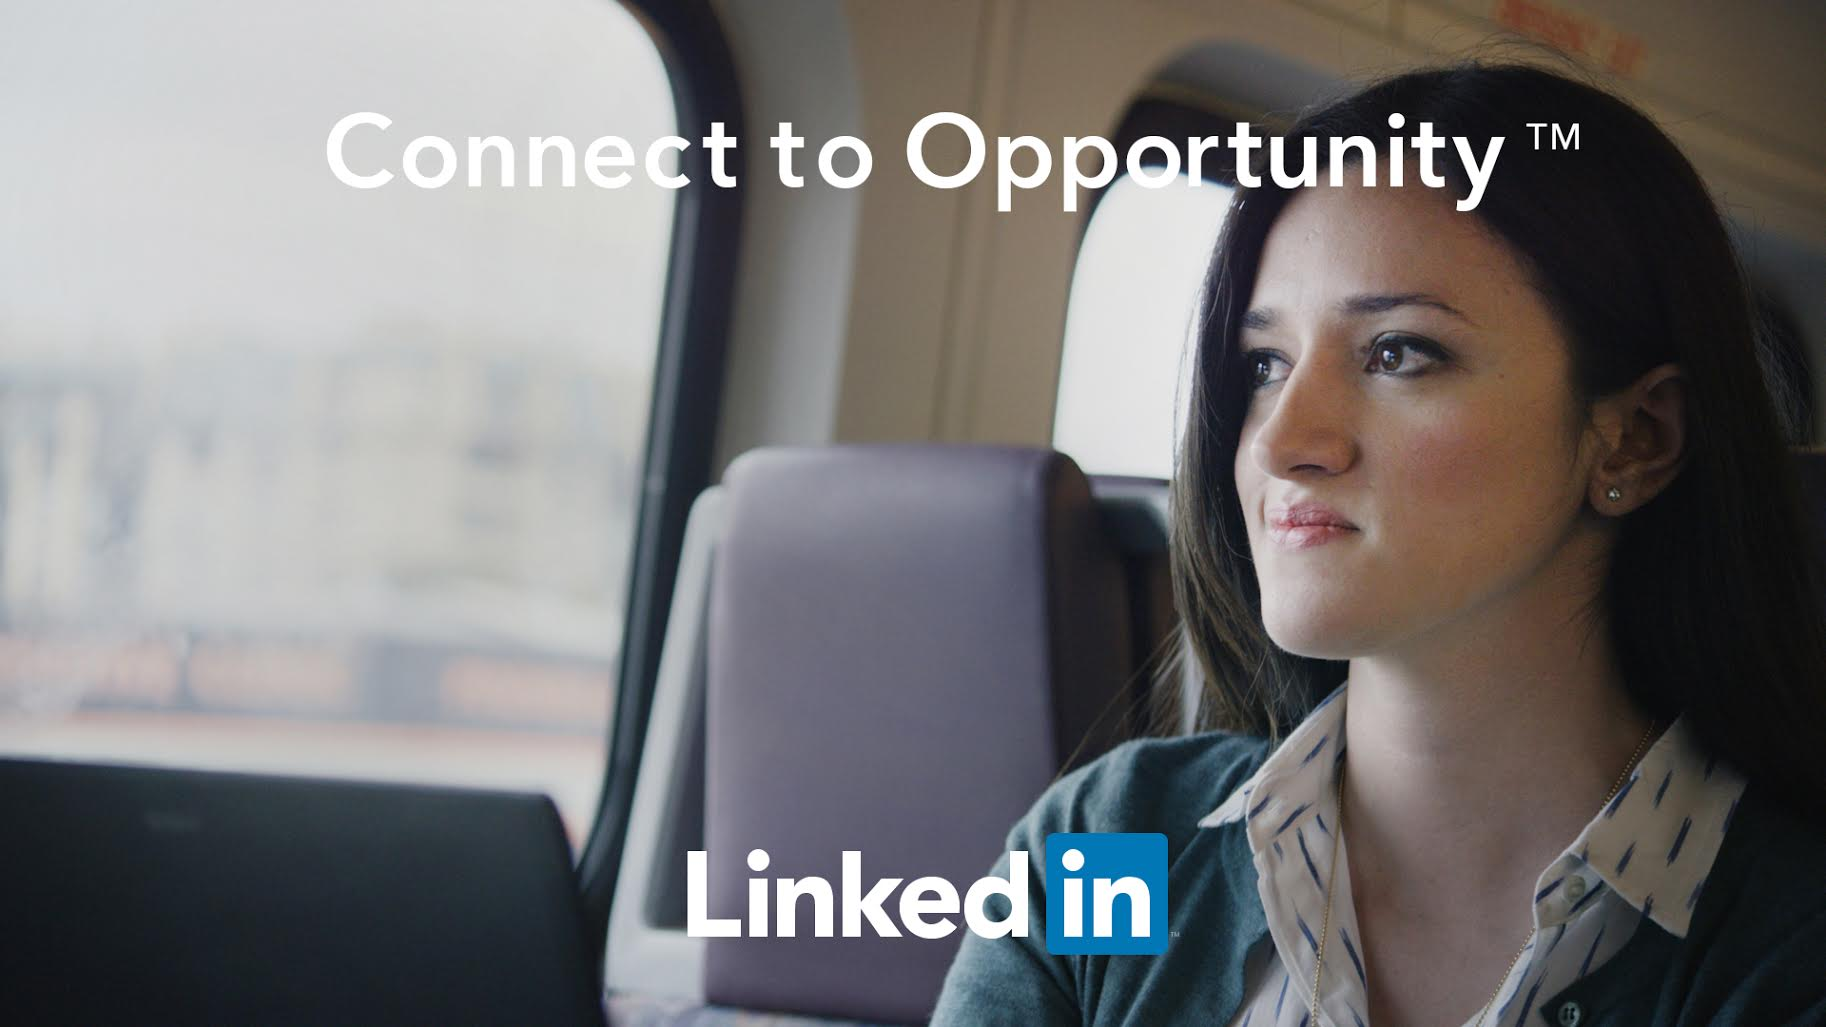 LinkedIn -- Connect to Opportunity™